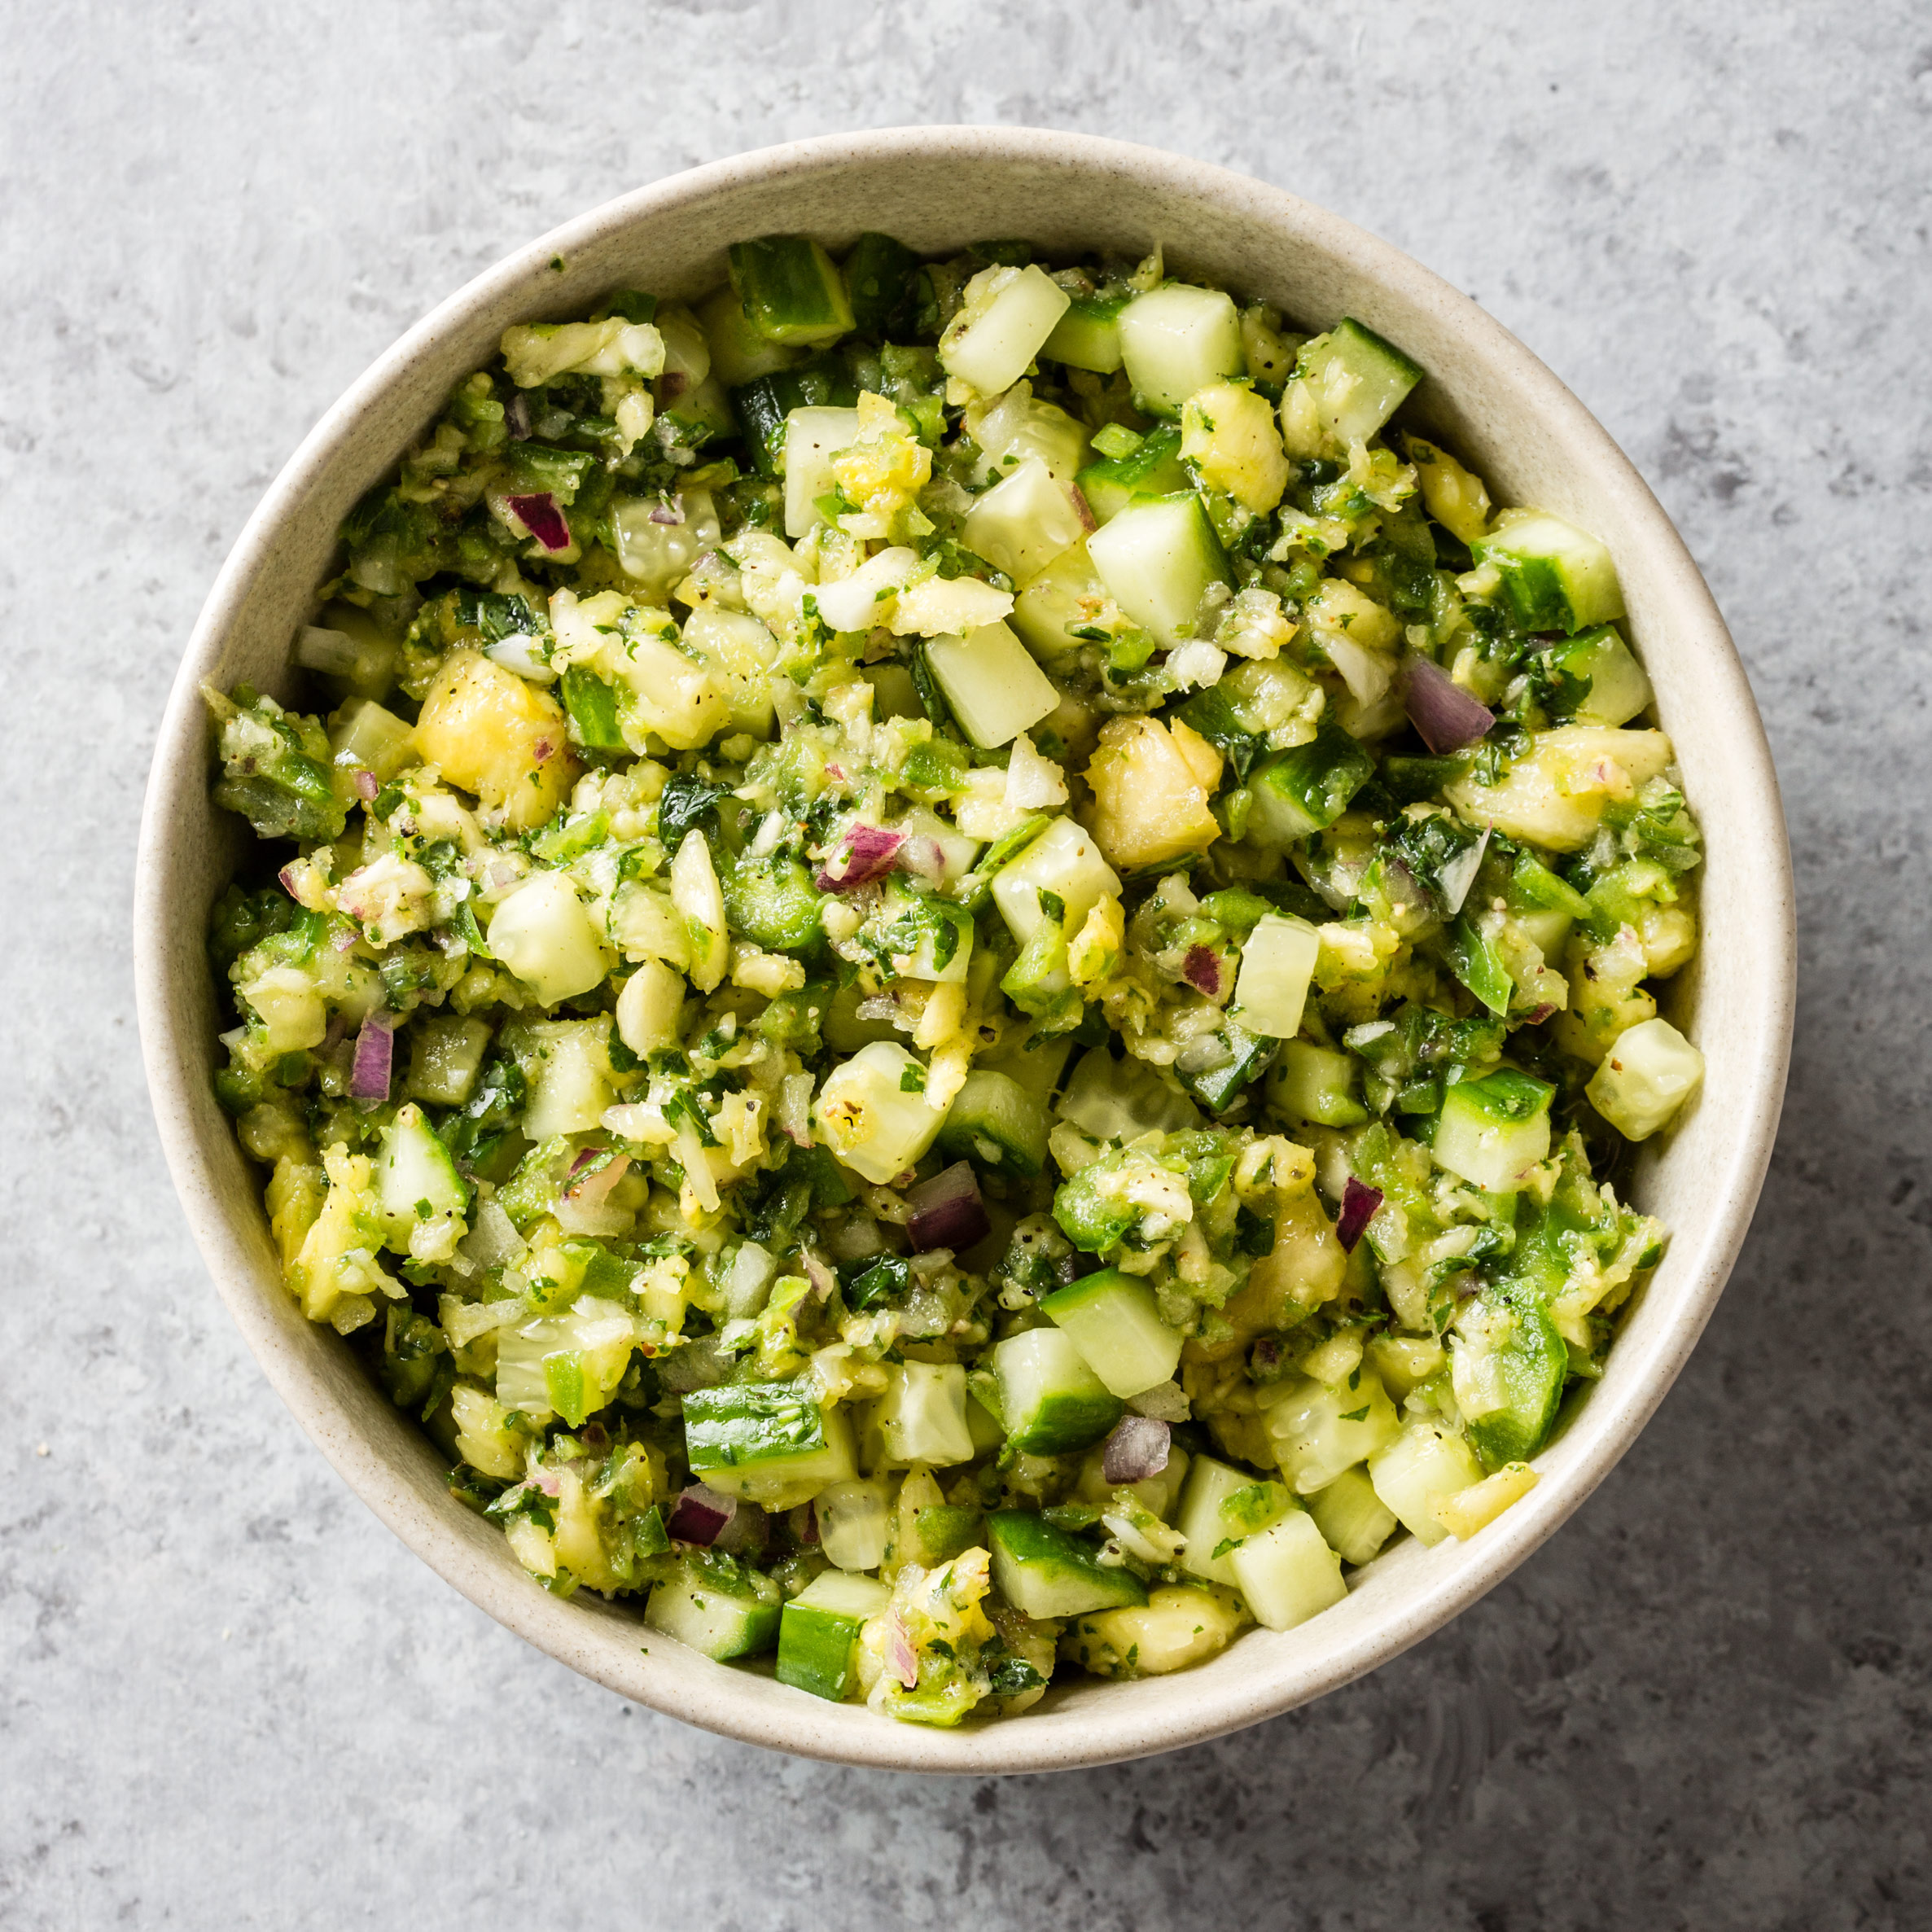 Pineapple-Cucumber Salsa | Cook's Country